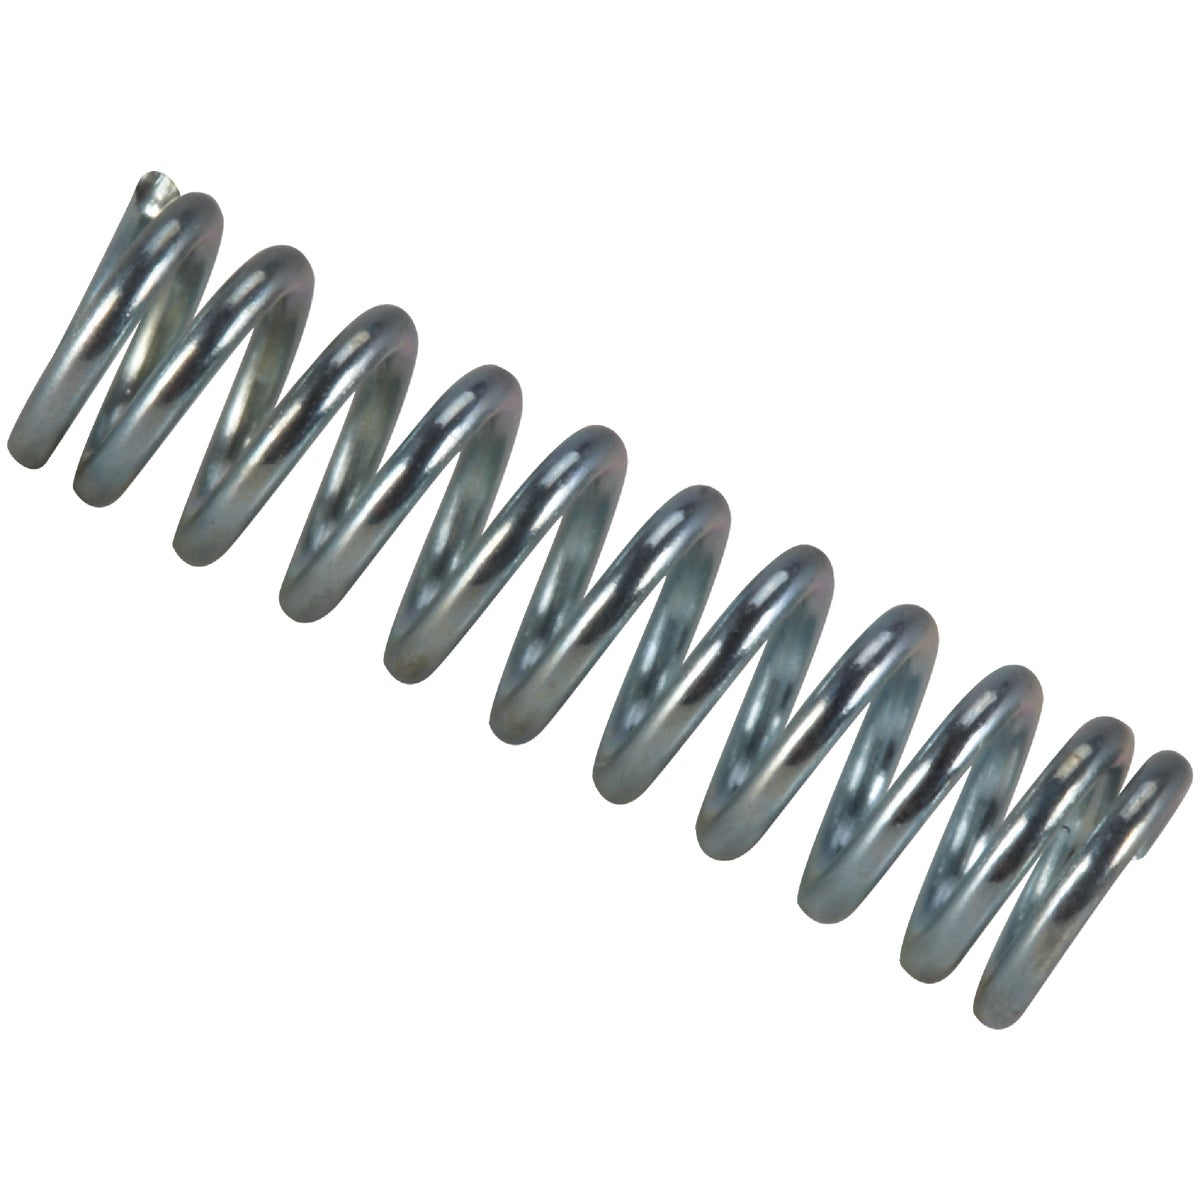 COMPRESSION SPRING - C-736 by Century Spring Corp